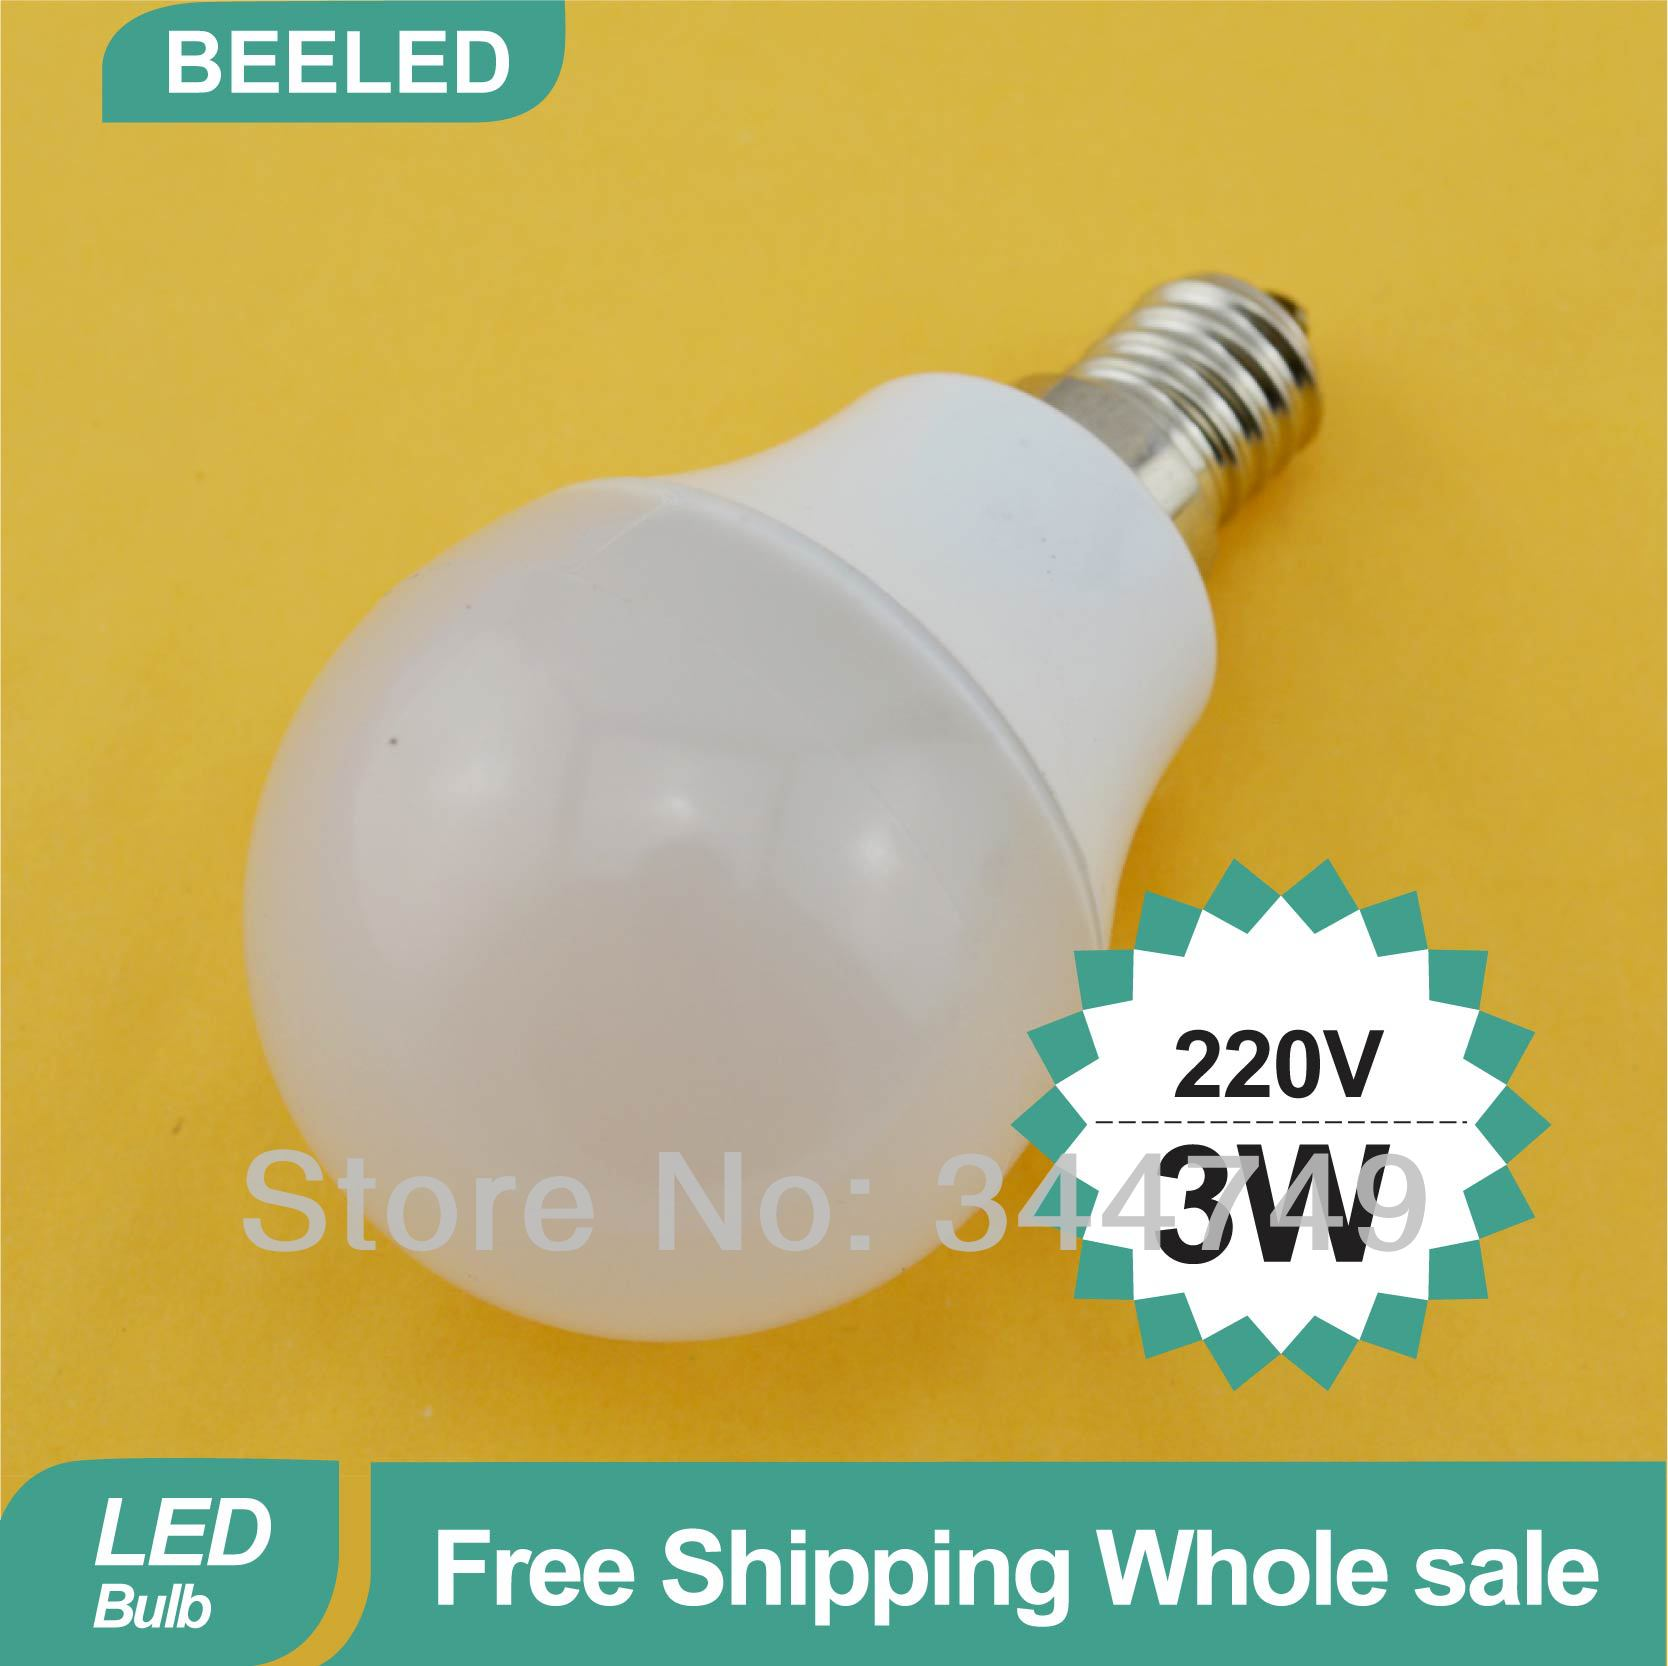 E14 AC220V 240VCool/Warm White 10PCS/lot Light Bulb 2W Freeshipping China Post 2835 SMD High Quality Epistar chip LED Bulb Lamp(China (Mainland))